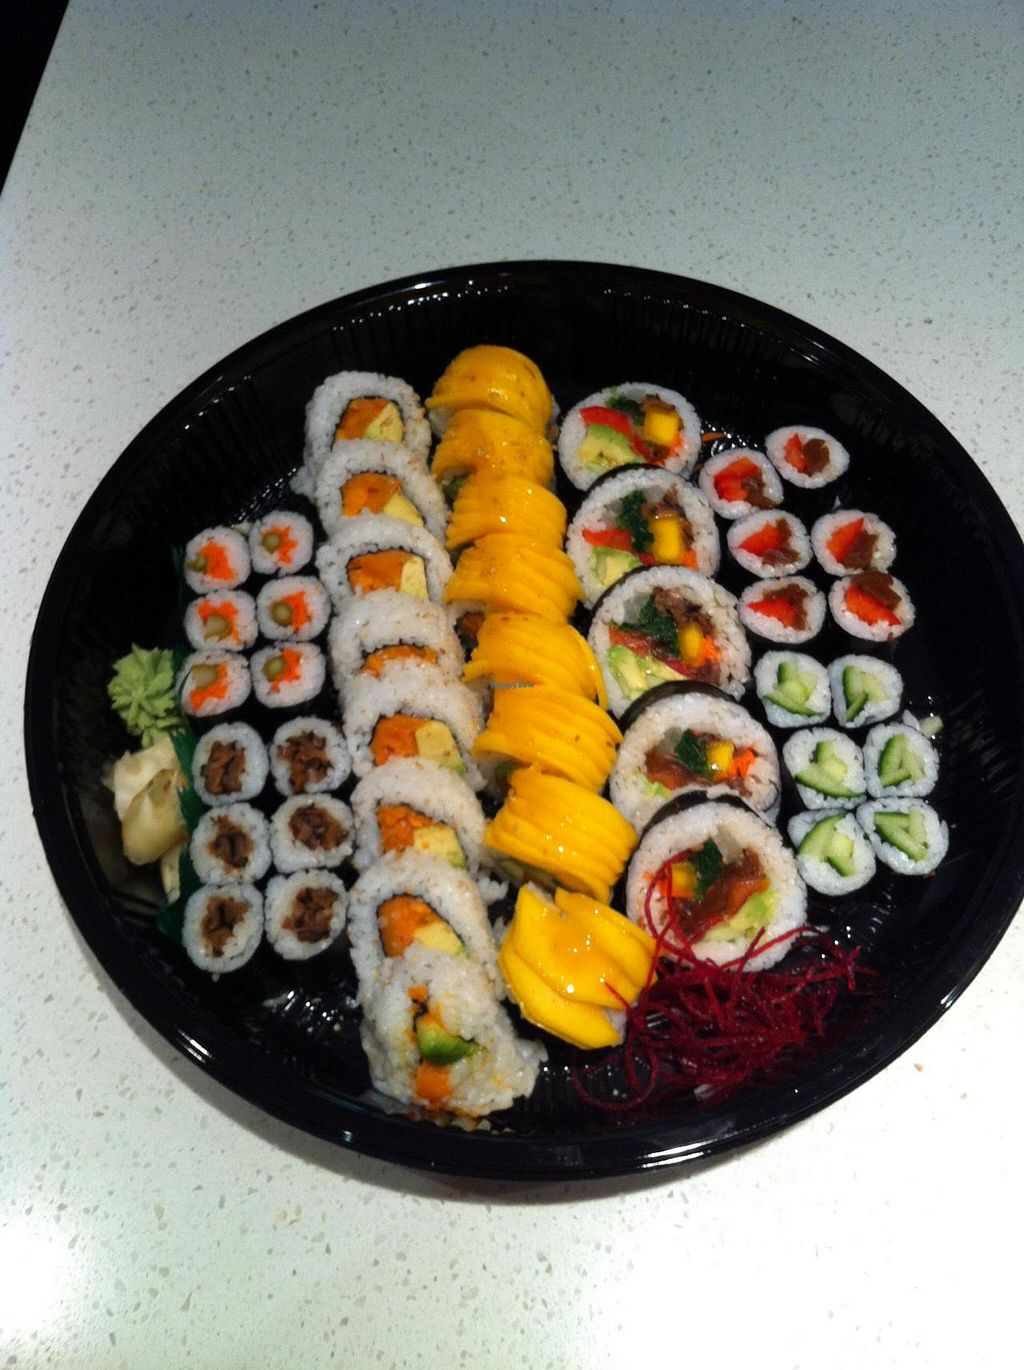 """Photo of Sushi Gallery  by <a href=""""/members/profile/vegan%20frog"""">vegan frog</a> <br/>Vegan platter <br/> June 7, 2015  - <a href='/contact/abuse/image/29495/105006'>Report</a>"""